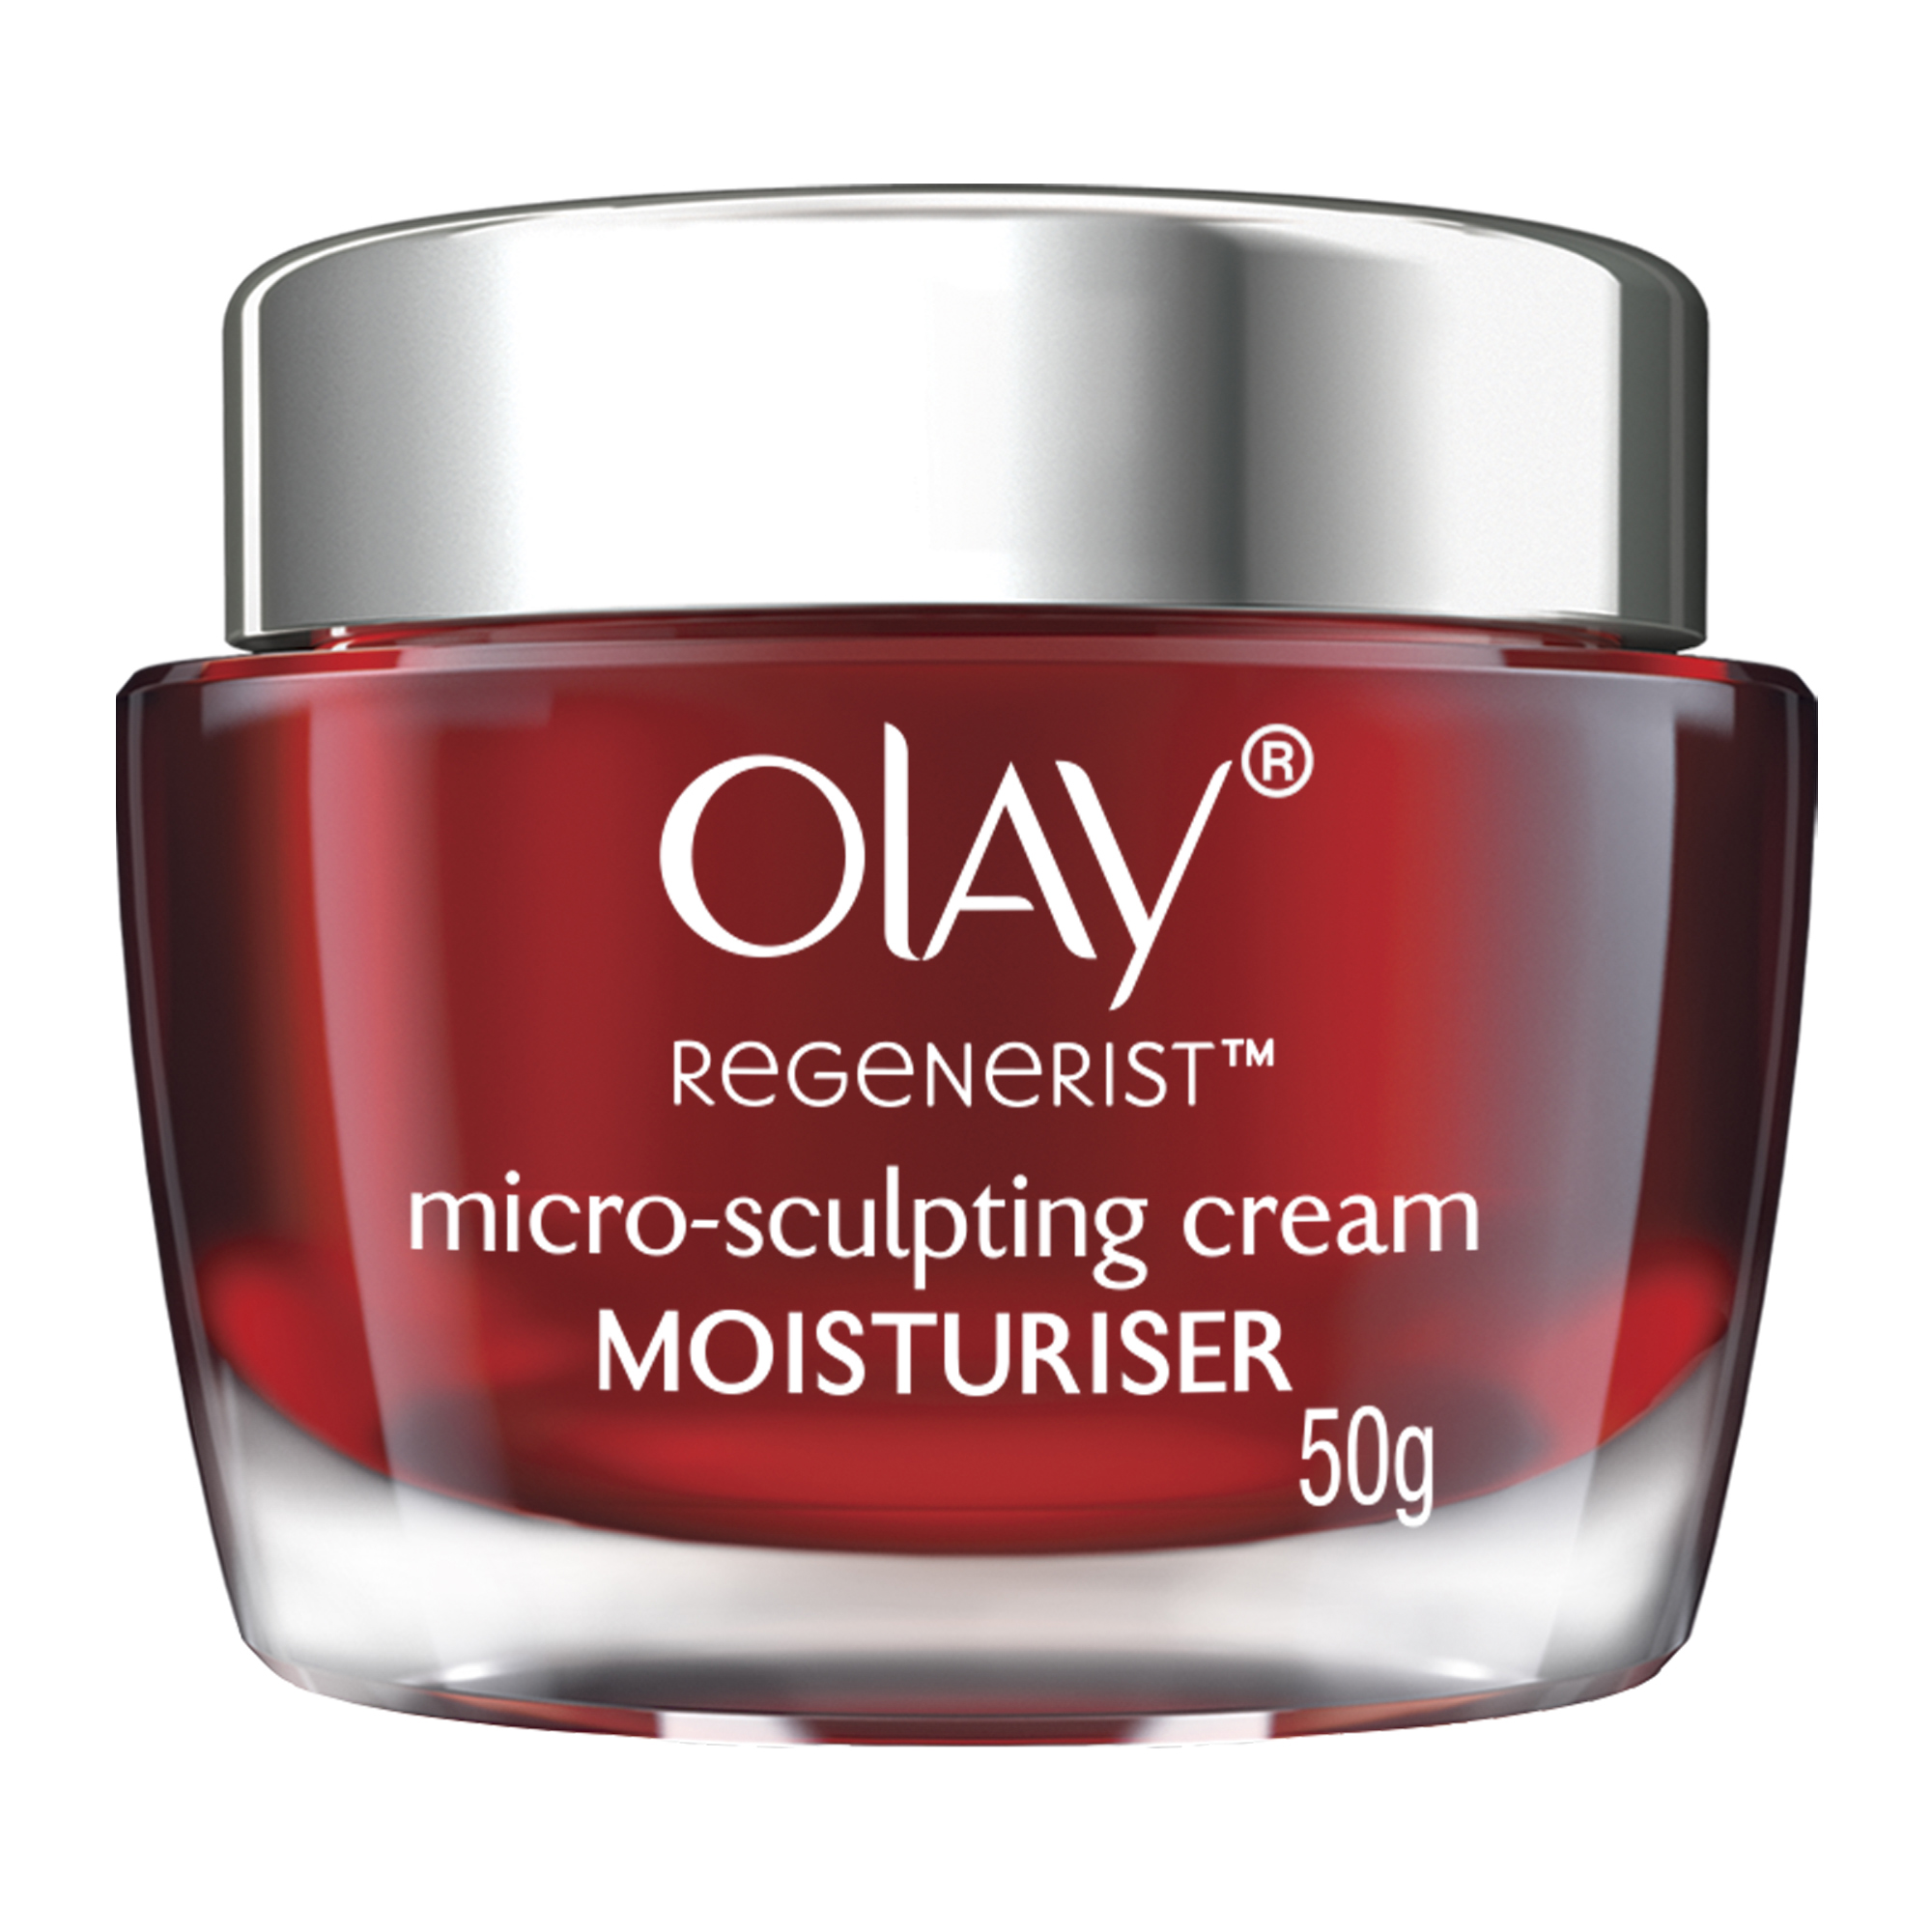 Olay Regenerist Microsculpting Cream Review